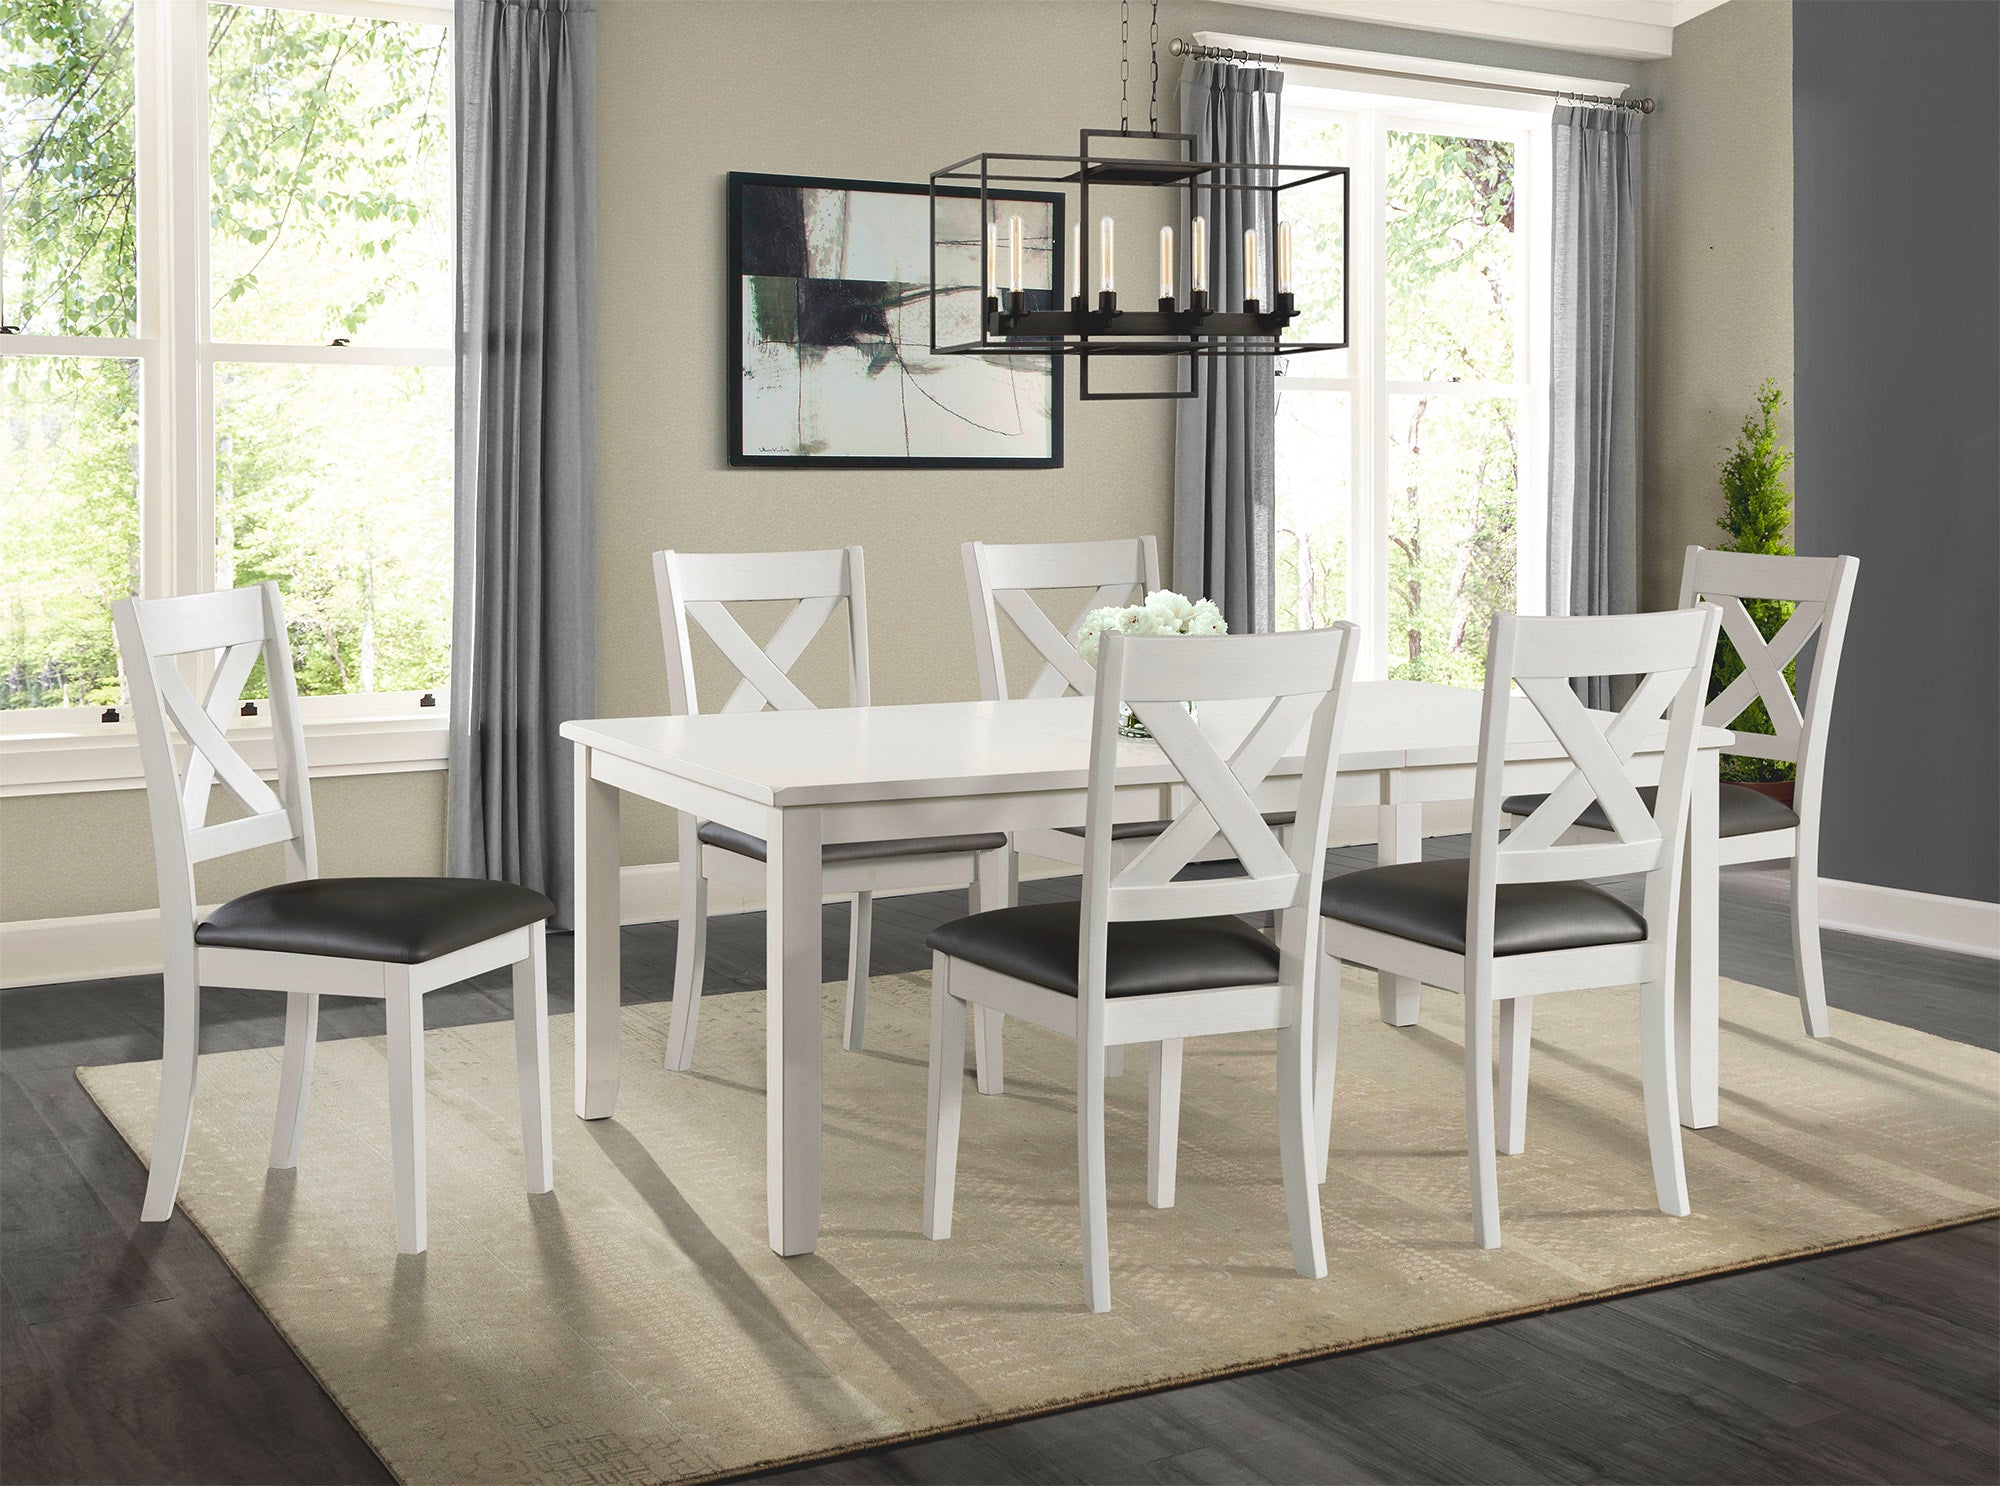 Rolex White 5 Piece Dining Set With Upholstered Chair Kane S Furniture